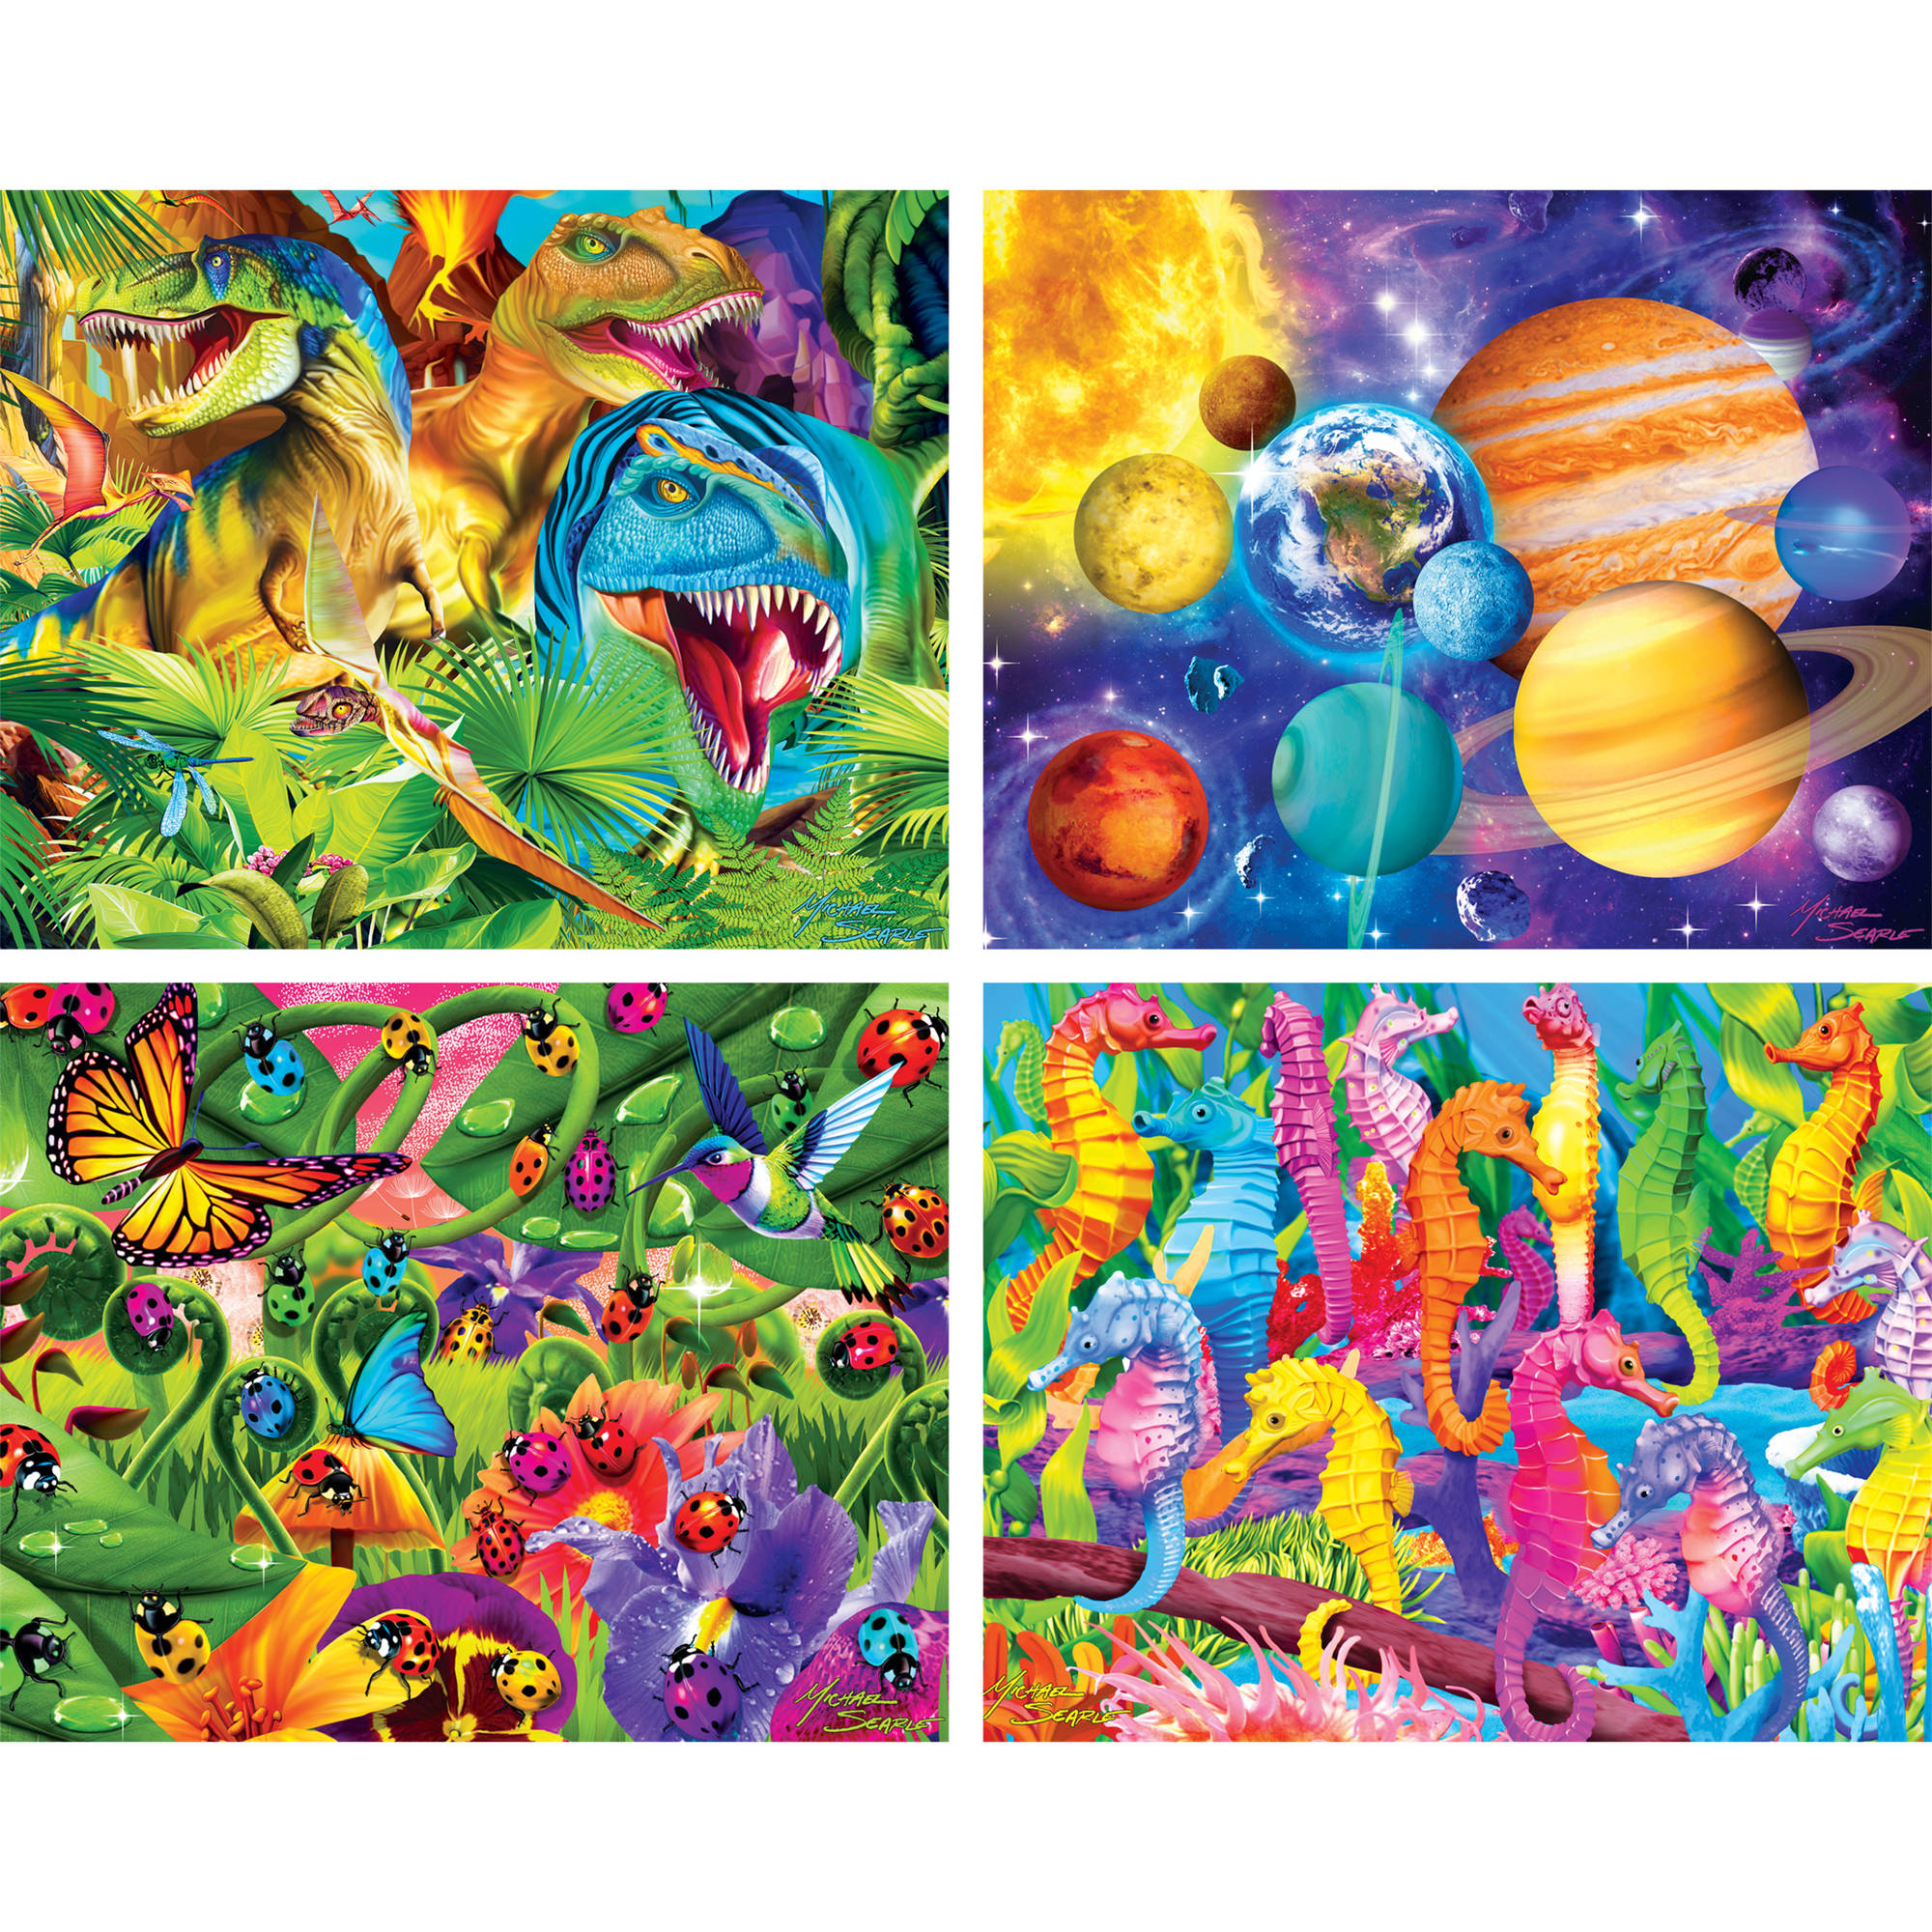 4-pack Glow in the Dark Multipack 100 Piece Puzzles by MasterPieces Puzzle Company